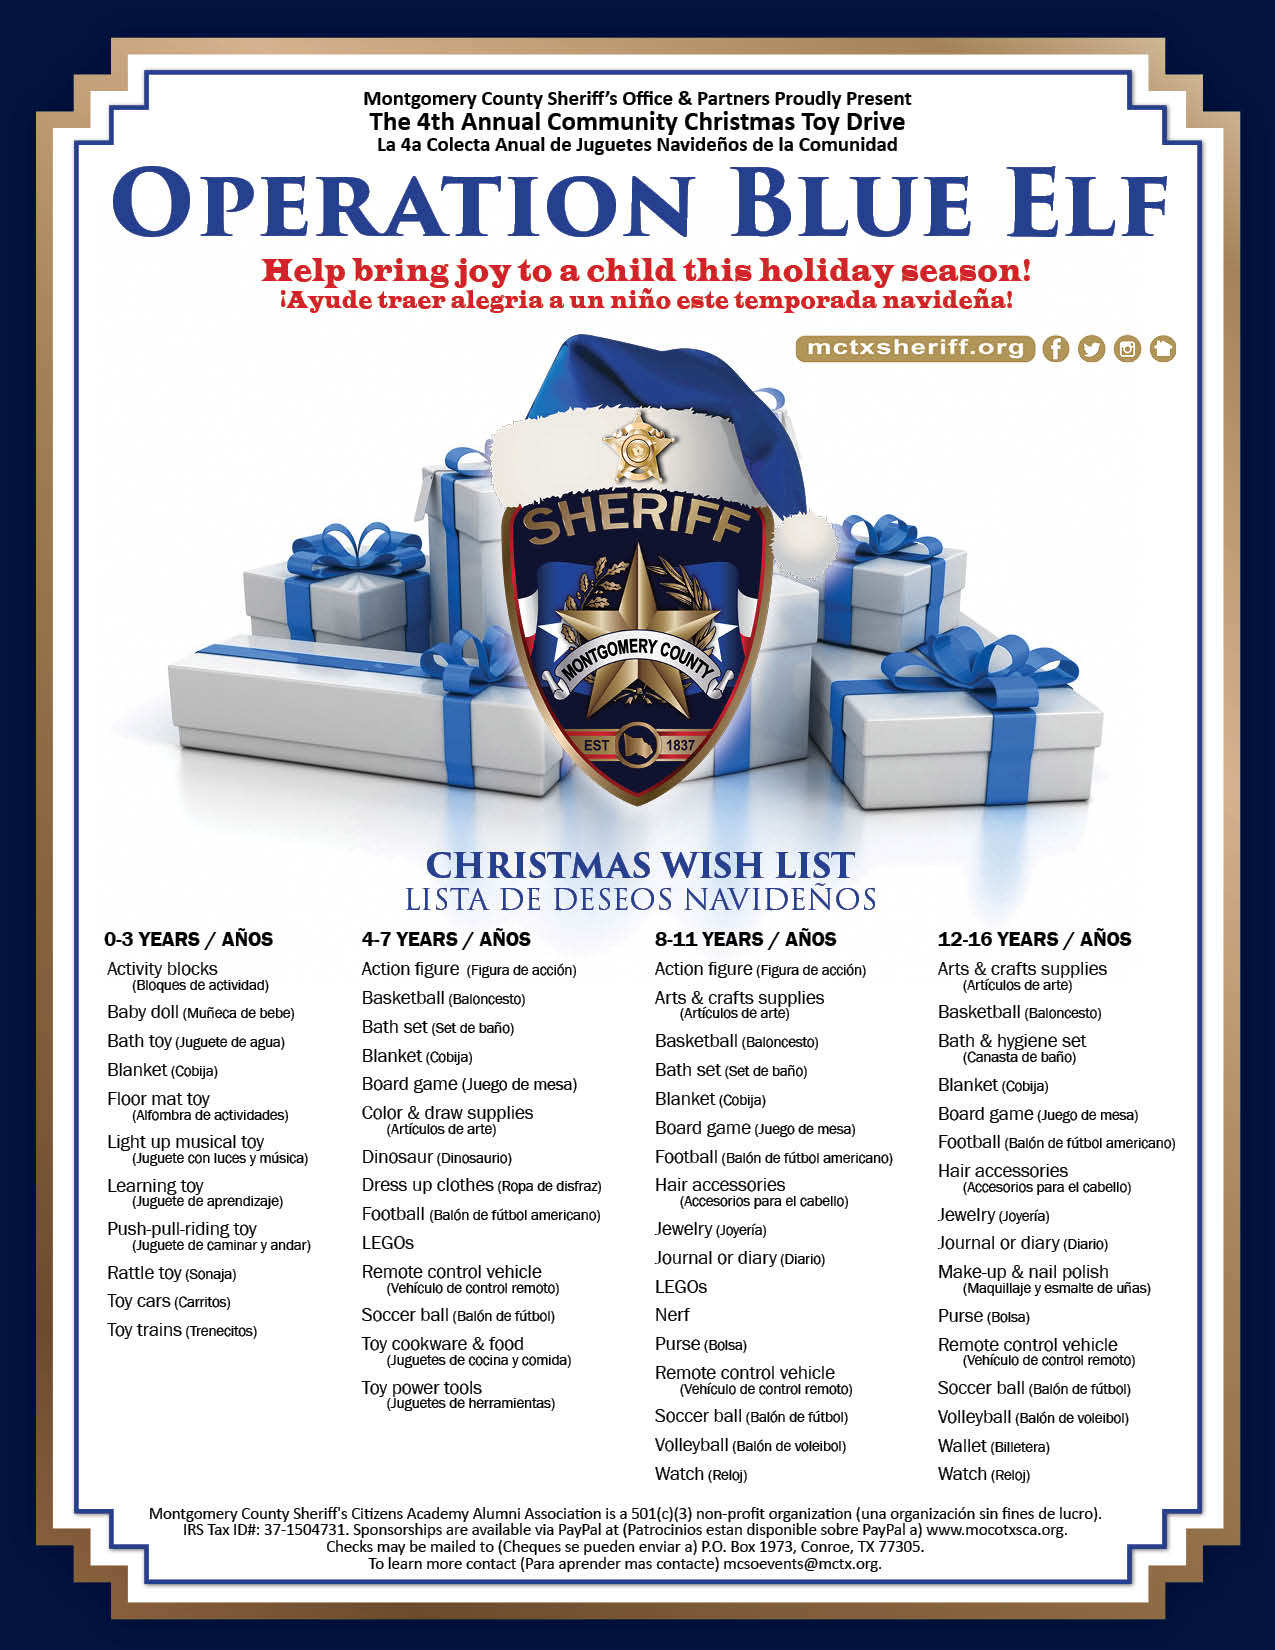 Montgomery County Sheriff's Office 4th Annual Operation Blue Elf